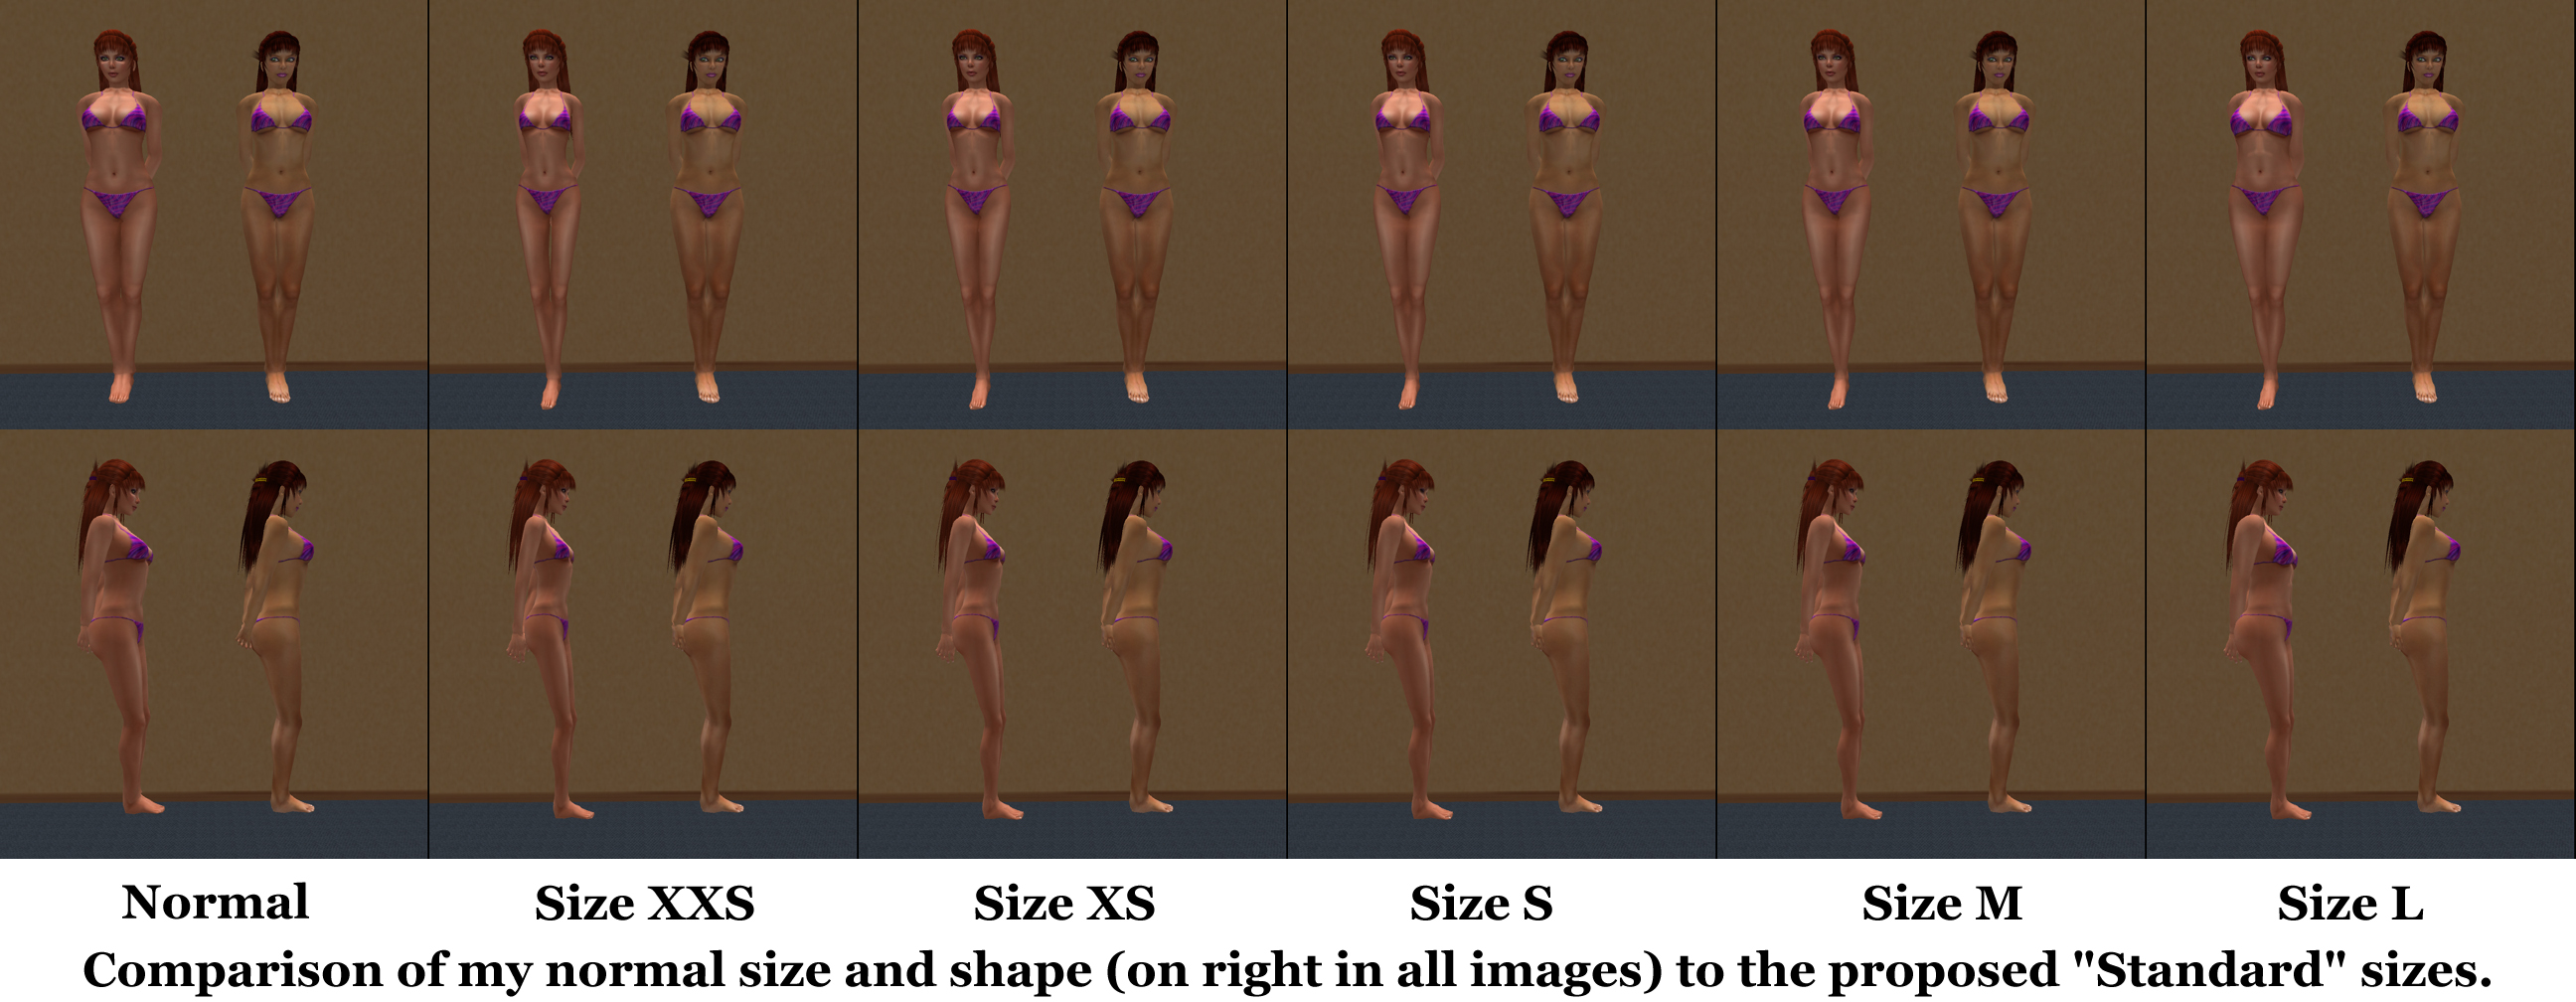 Breast Size Comparison Photos http://www.sluniverse.com/php/vb/general-sl-discussion/66765-standard-sizing-initiative.html